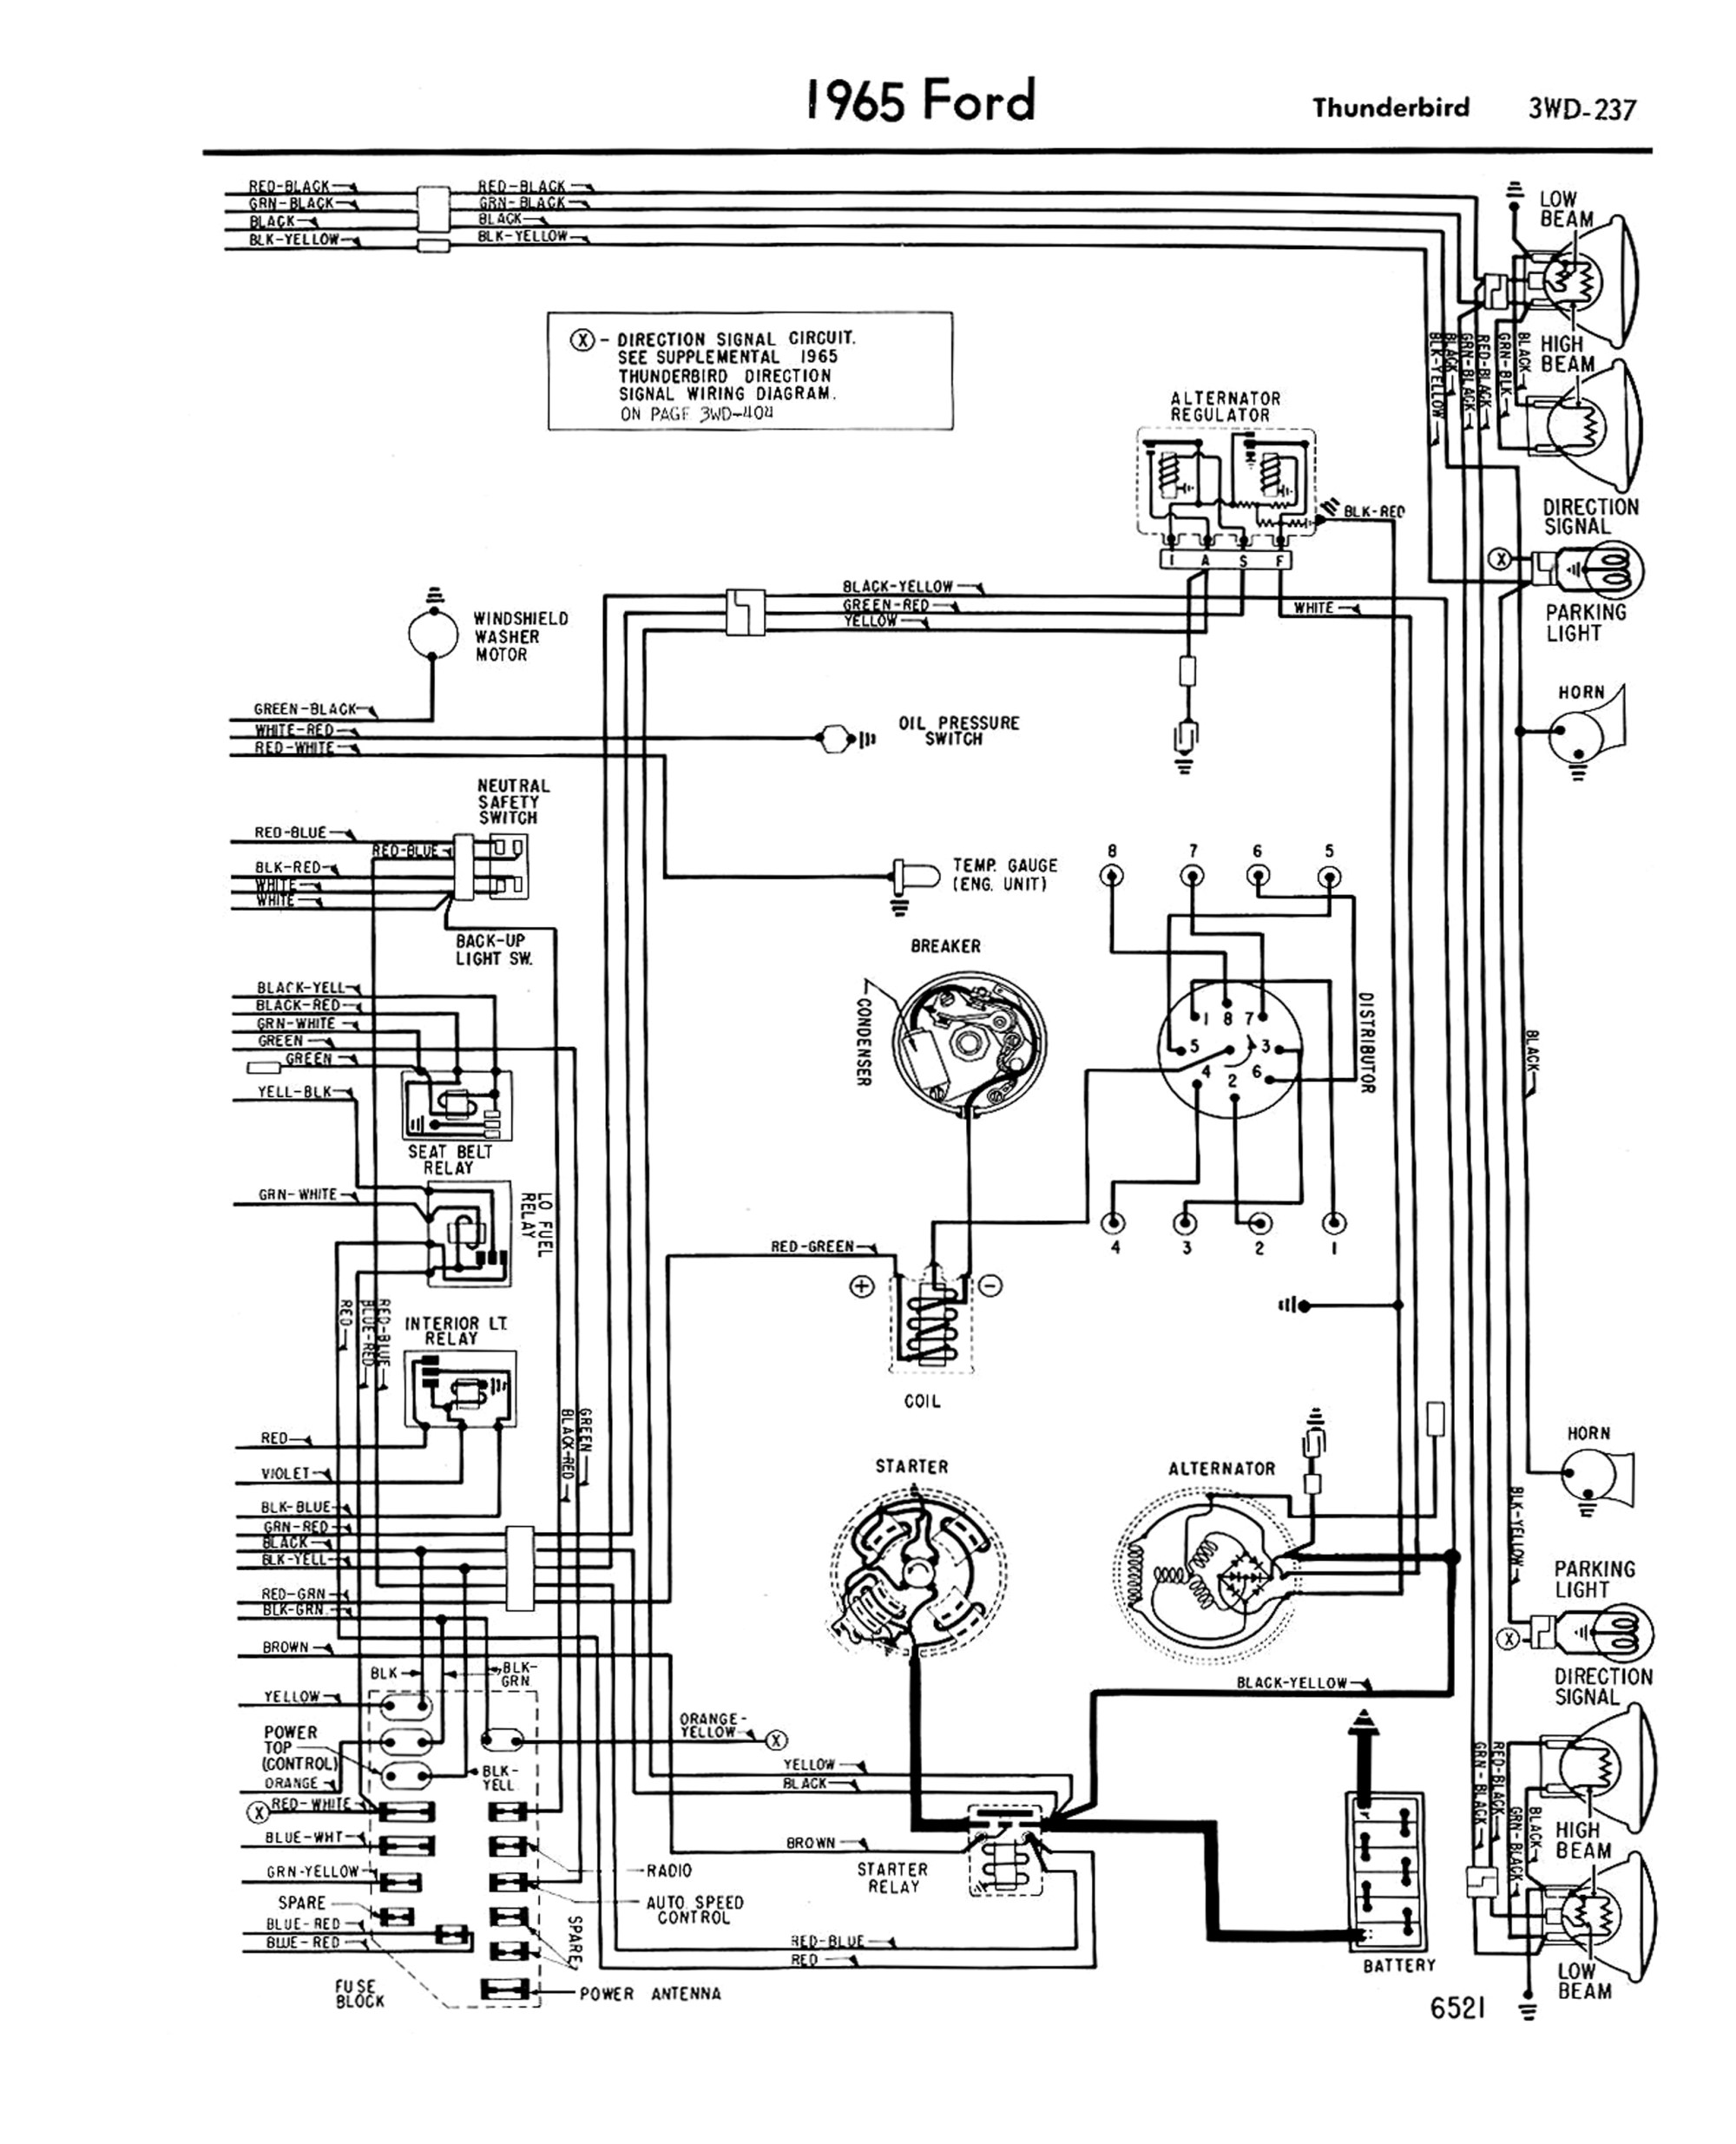 hight resolution of 1959 ford regulator wiring wiring diagram repair guides1958 68 ford electrical schematics1959 ford regulator wiring 14